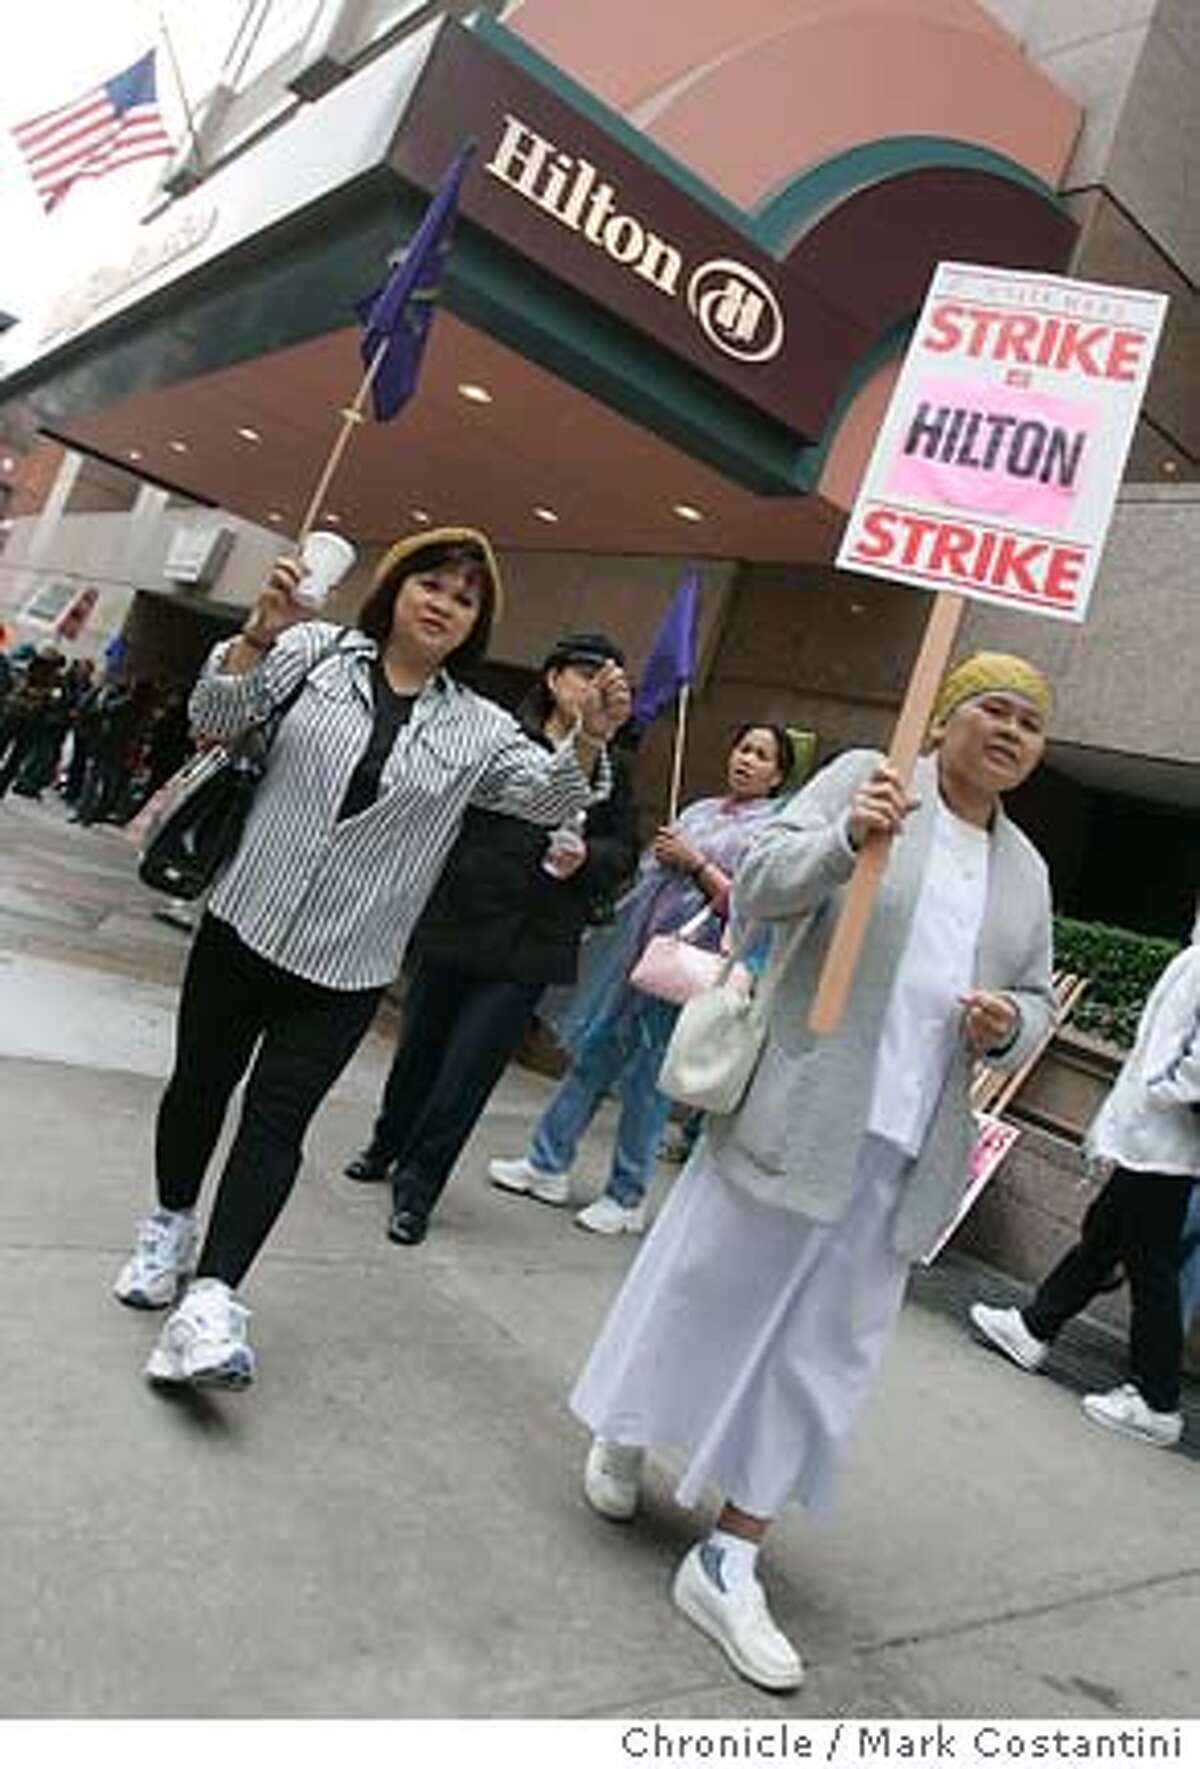 The hotel workers' union, Local 2 of what now is called Unite Here (combination of hotel workers and garment workers) hold a strike at the Hilton Hotel on O'farrell and Taylor--shown here at the strike are Charito Santos(left), who has worked there for 11 years and Fortunata Naua(right), who has worked there for 21 years. Event on 9/28/04 in SAN FRANCISCO Photo: Mark Costantini/S.F. Chronicle